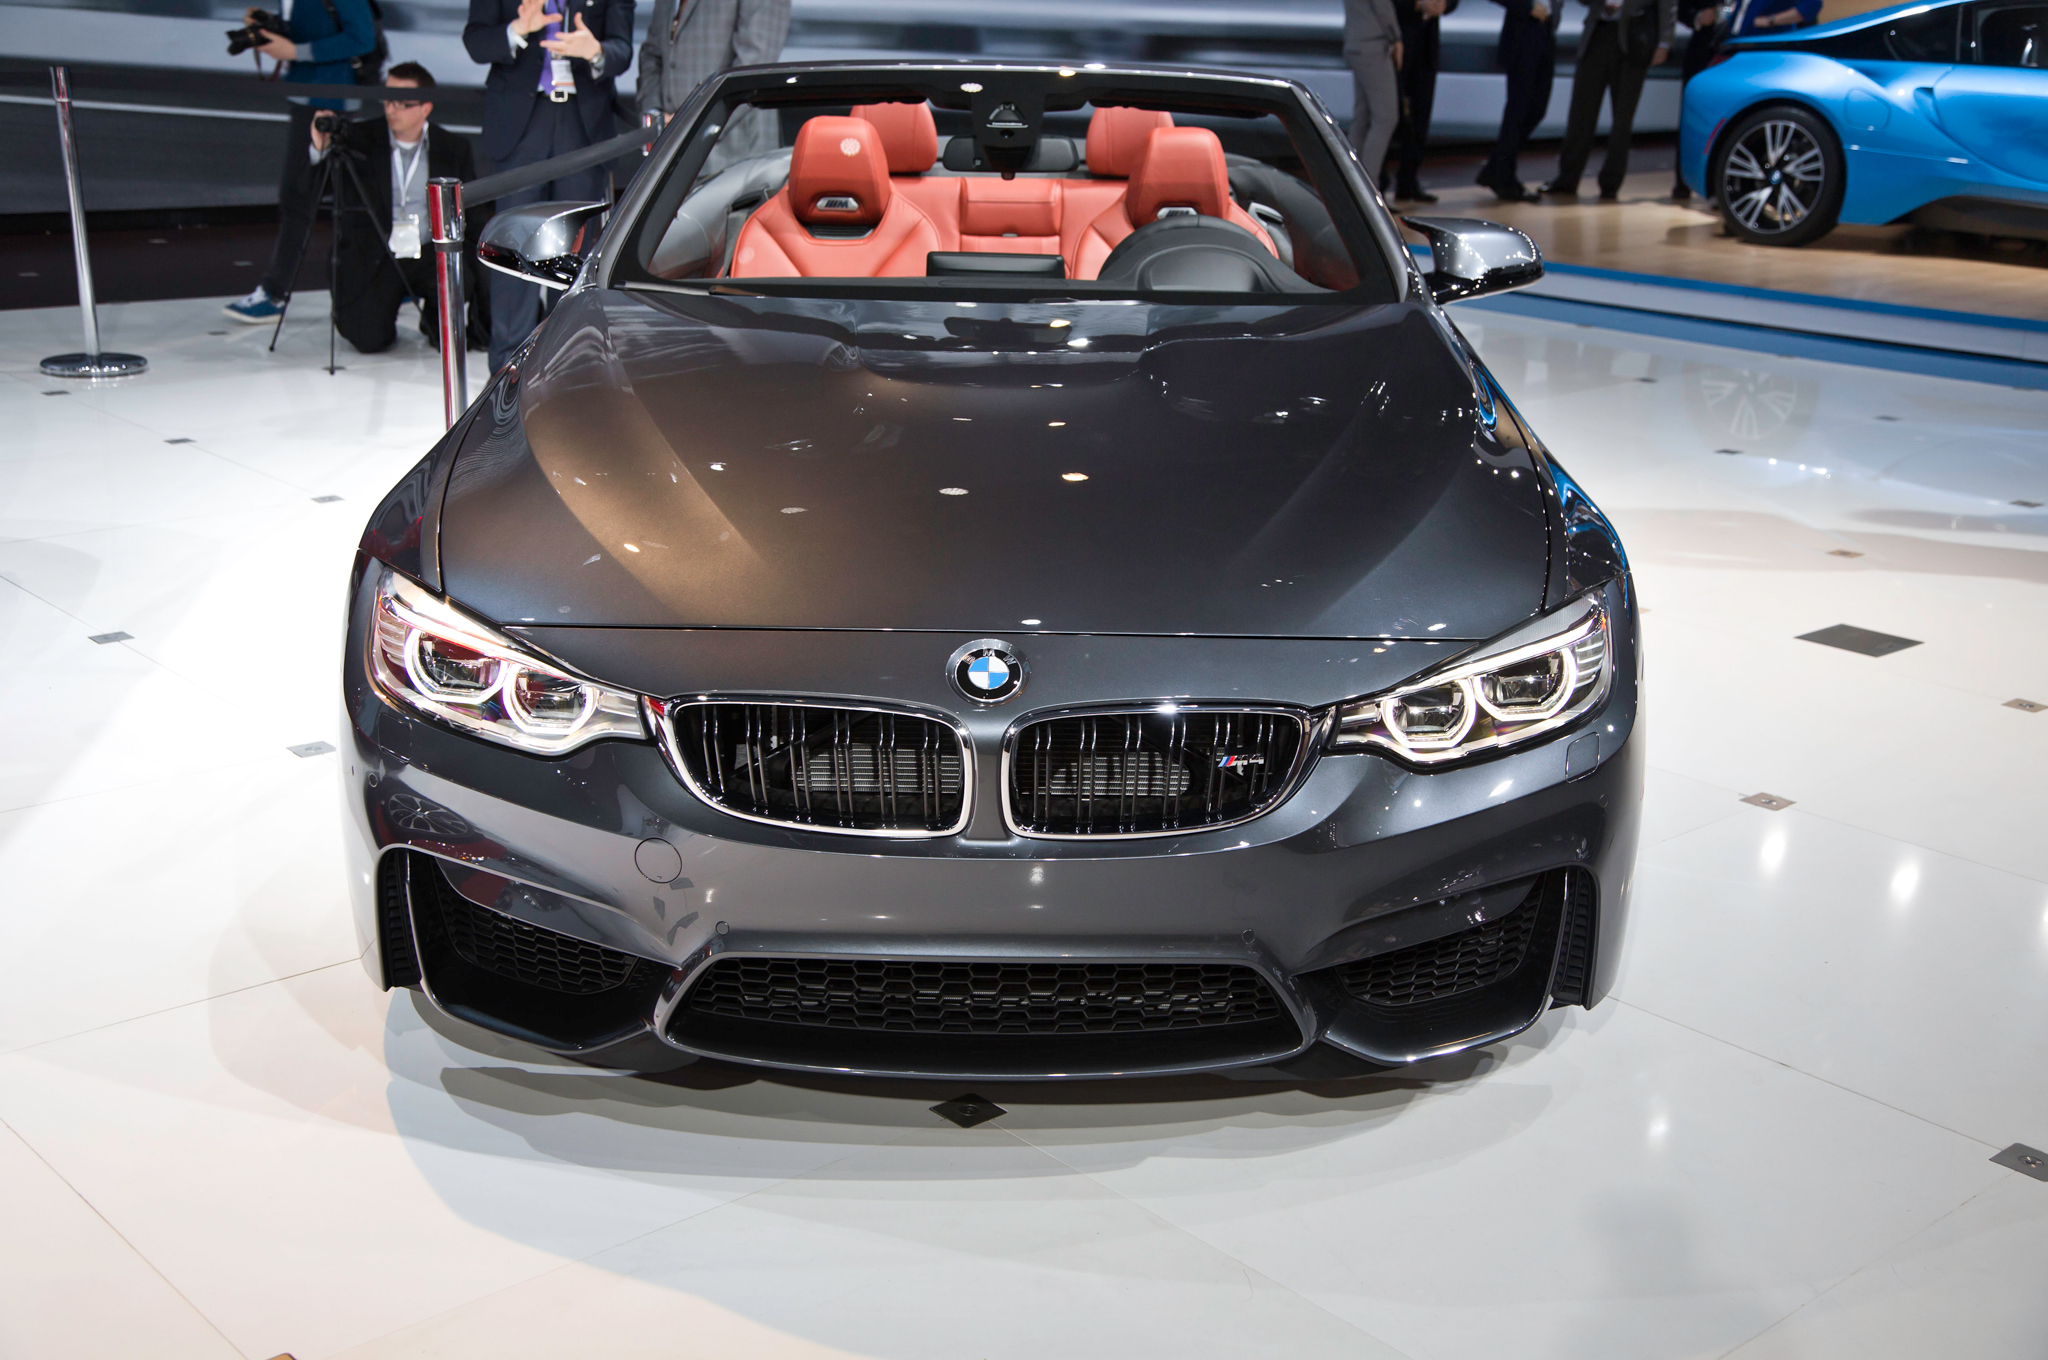 2015 Bmw M4 Convertible Front Design (View 10 of 50)